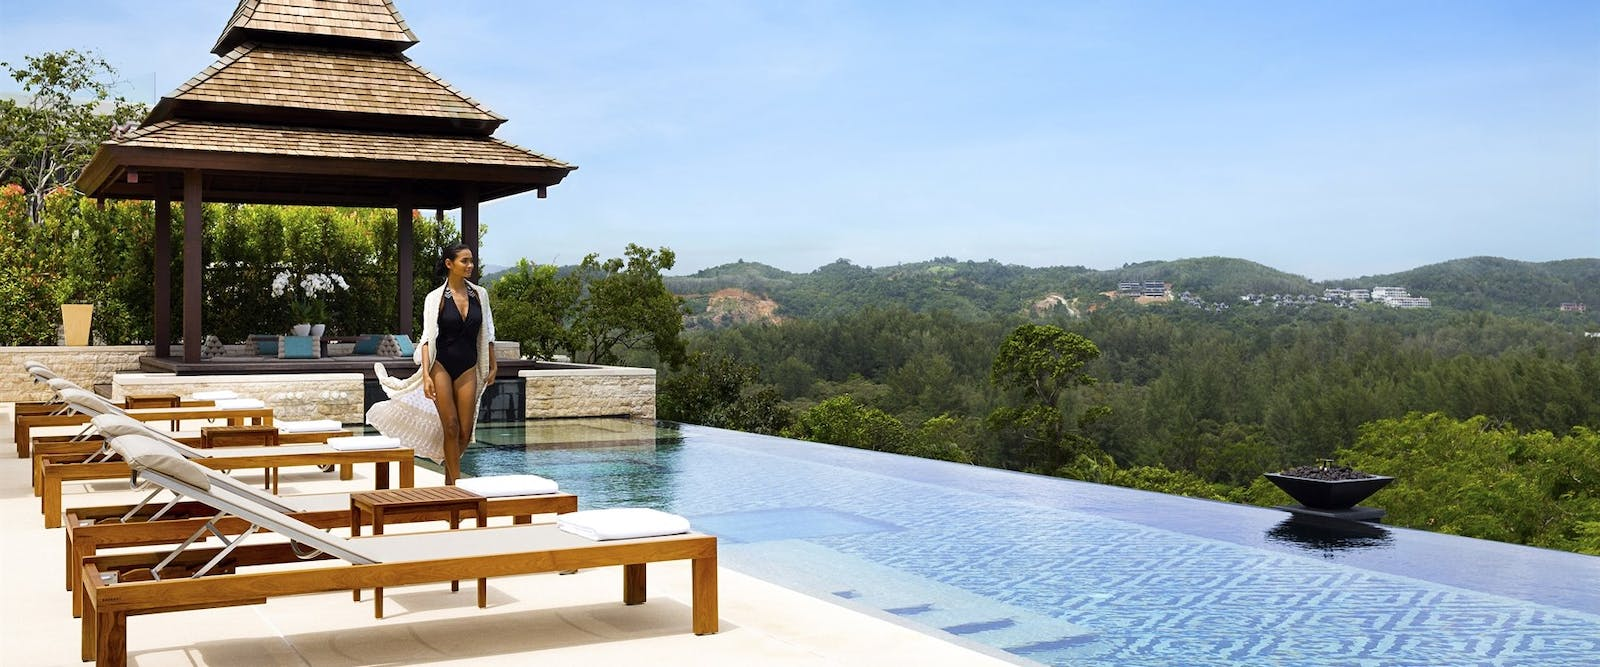 Residences Pool Day at Anantara Layan Phuket Resort, Thailand